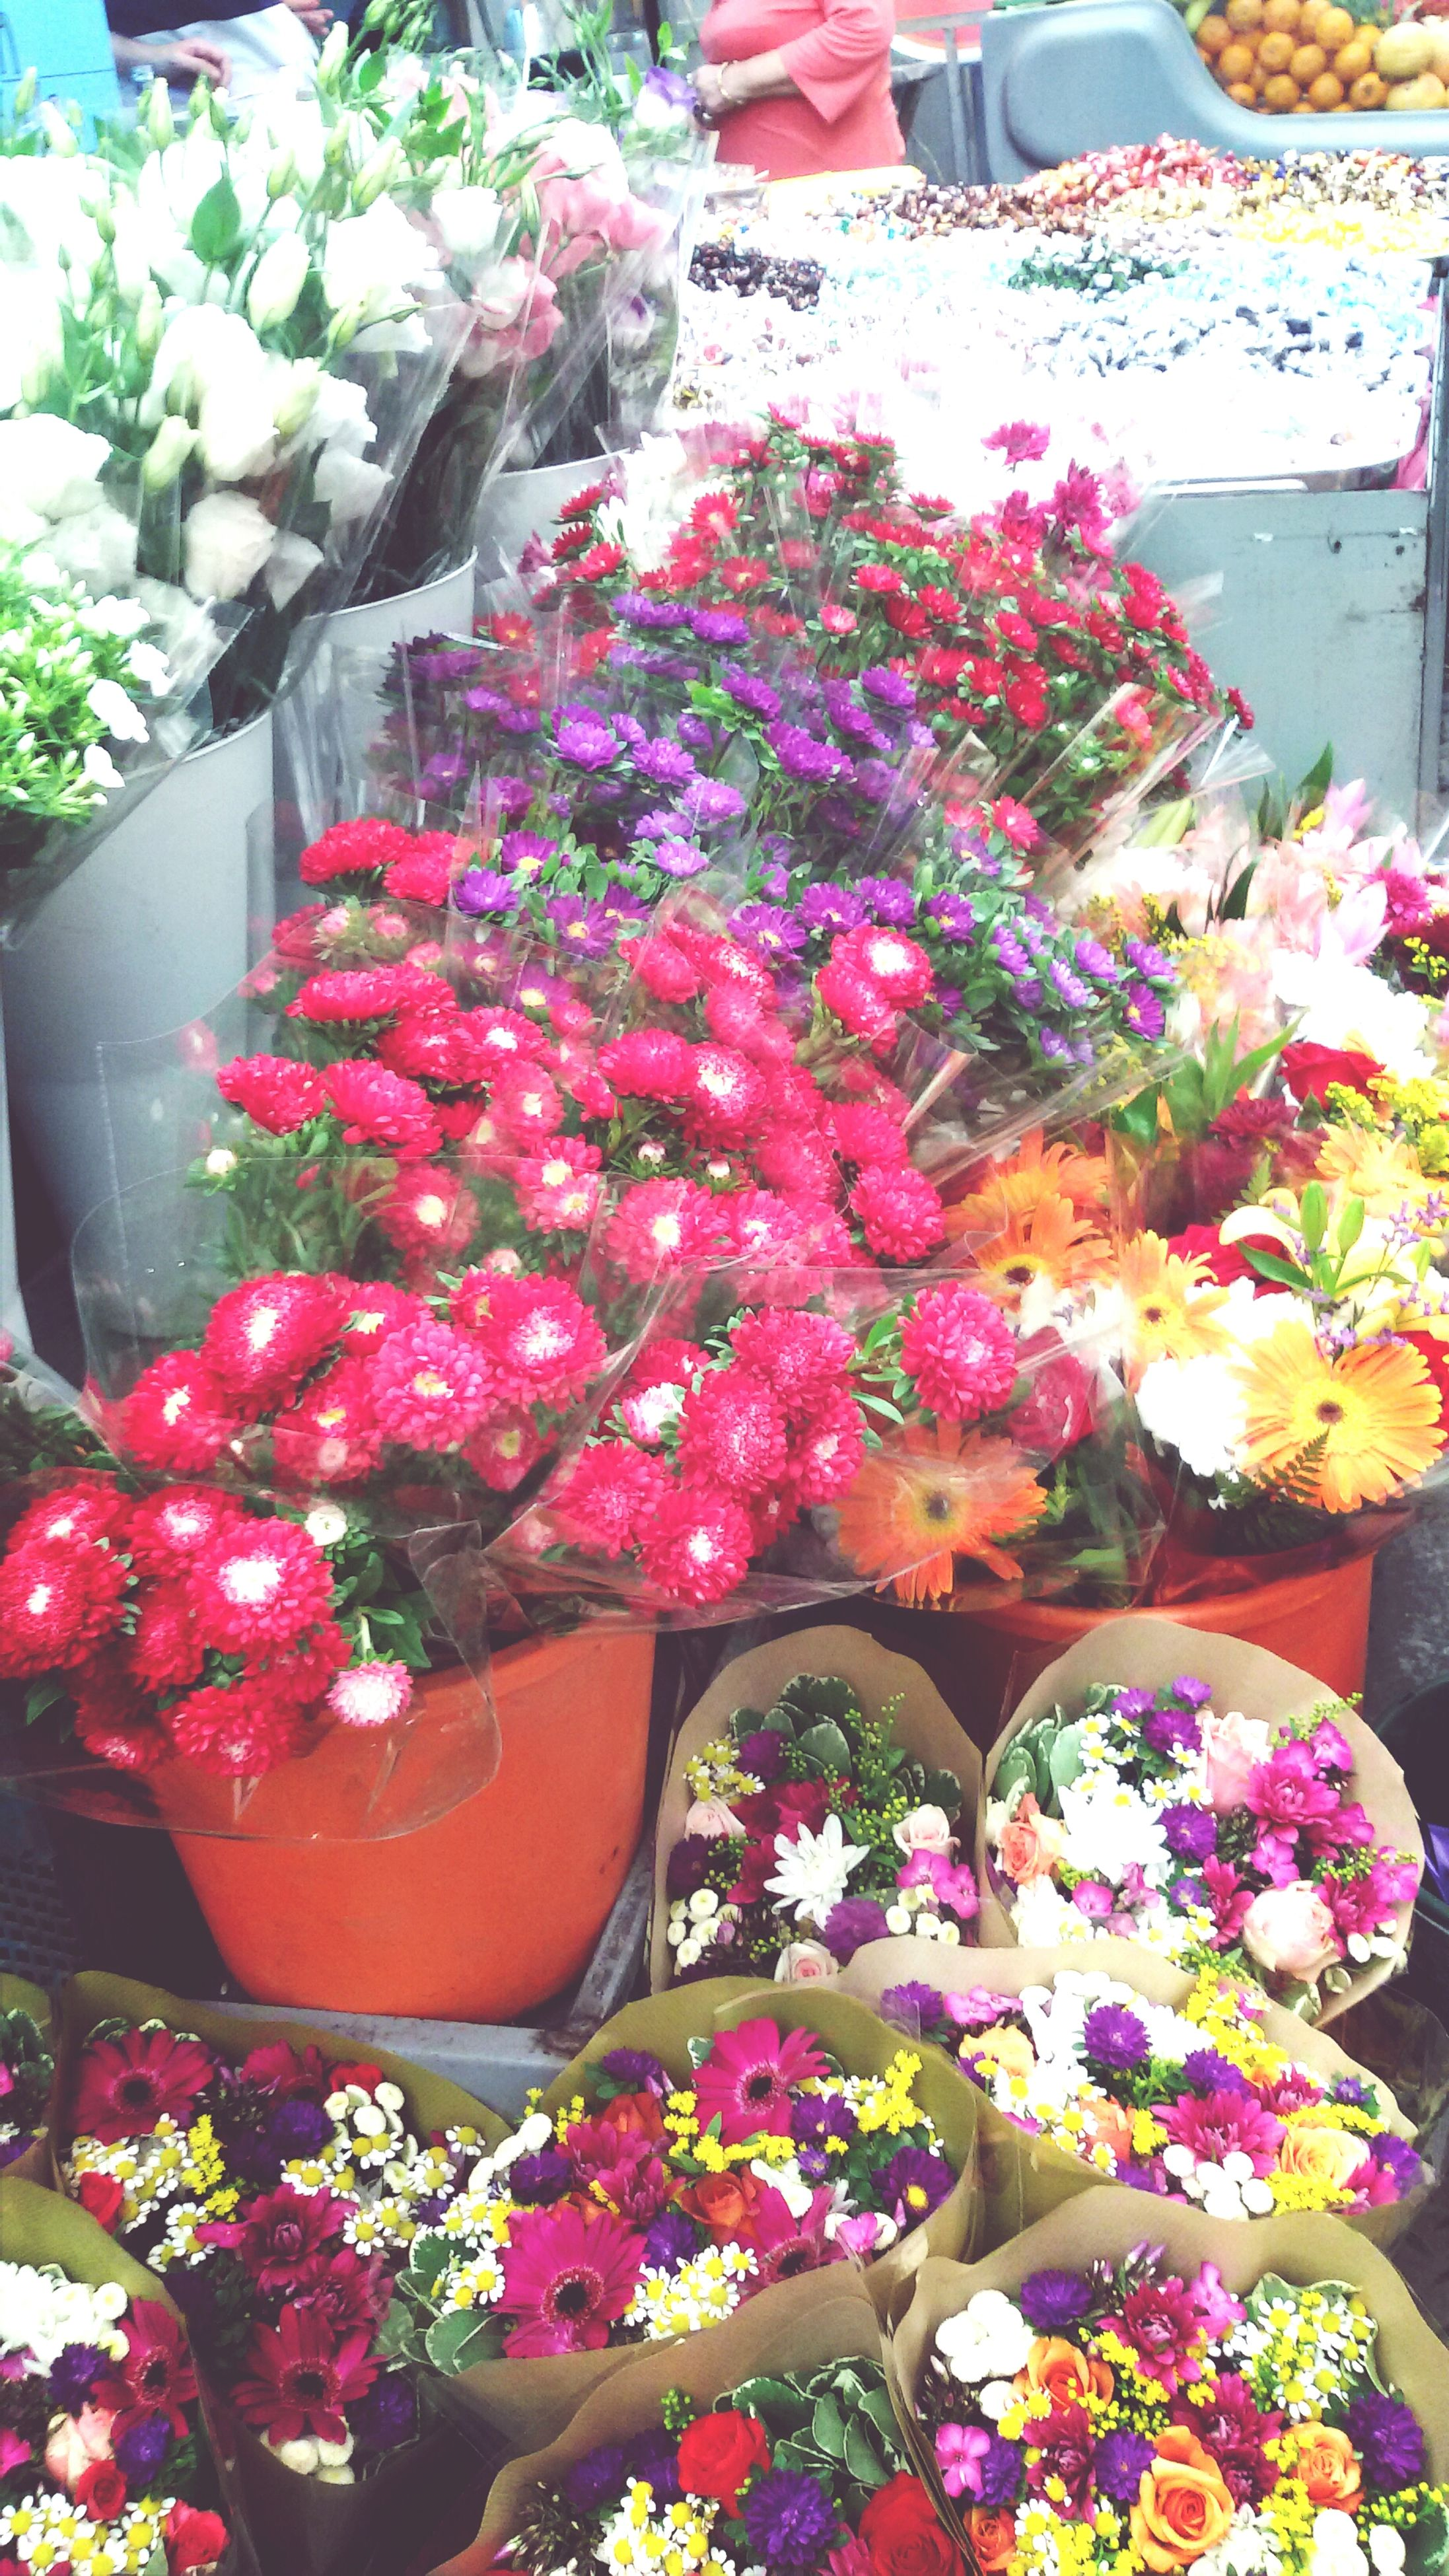 flower, freshness, for sale, retail, variation, abundance, choice, market, market stall, multi colored, fragility, large group of objects, bouquet, pink color, petal, plant, potted plant, display, store, growth